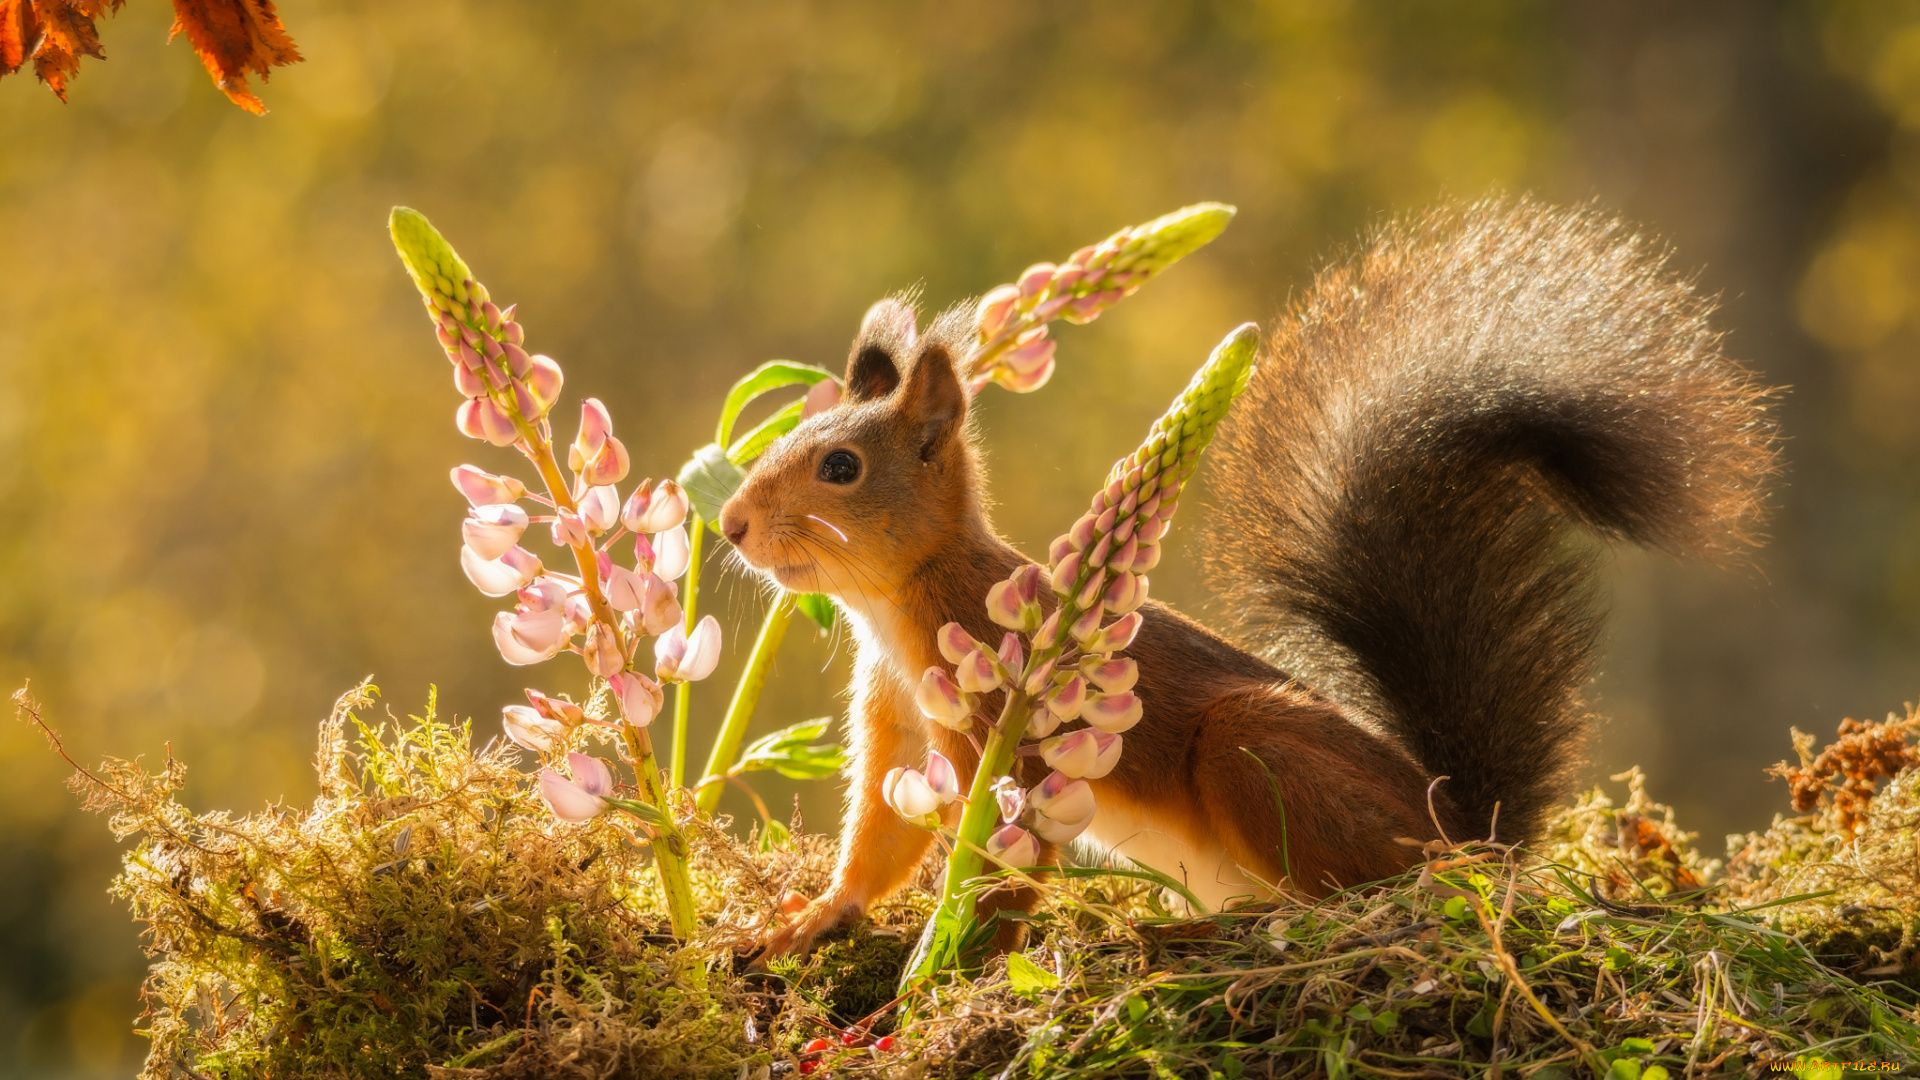 The Wallpapers Of Squirrel